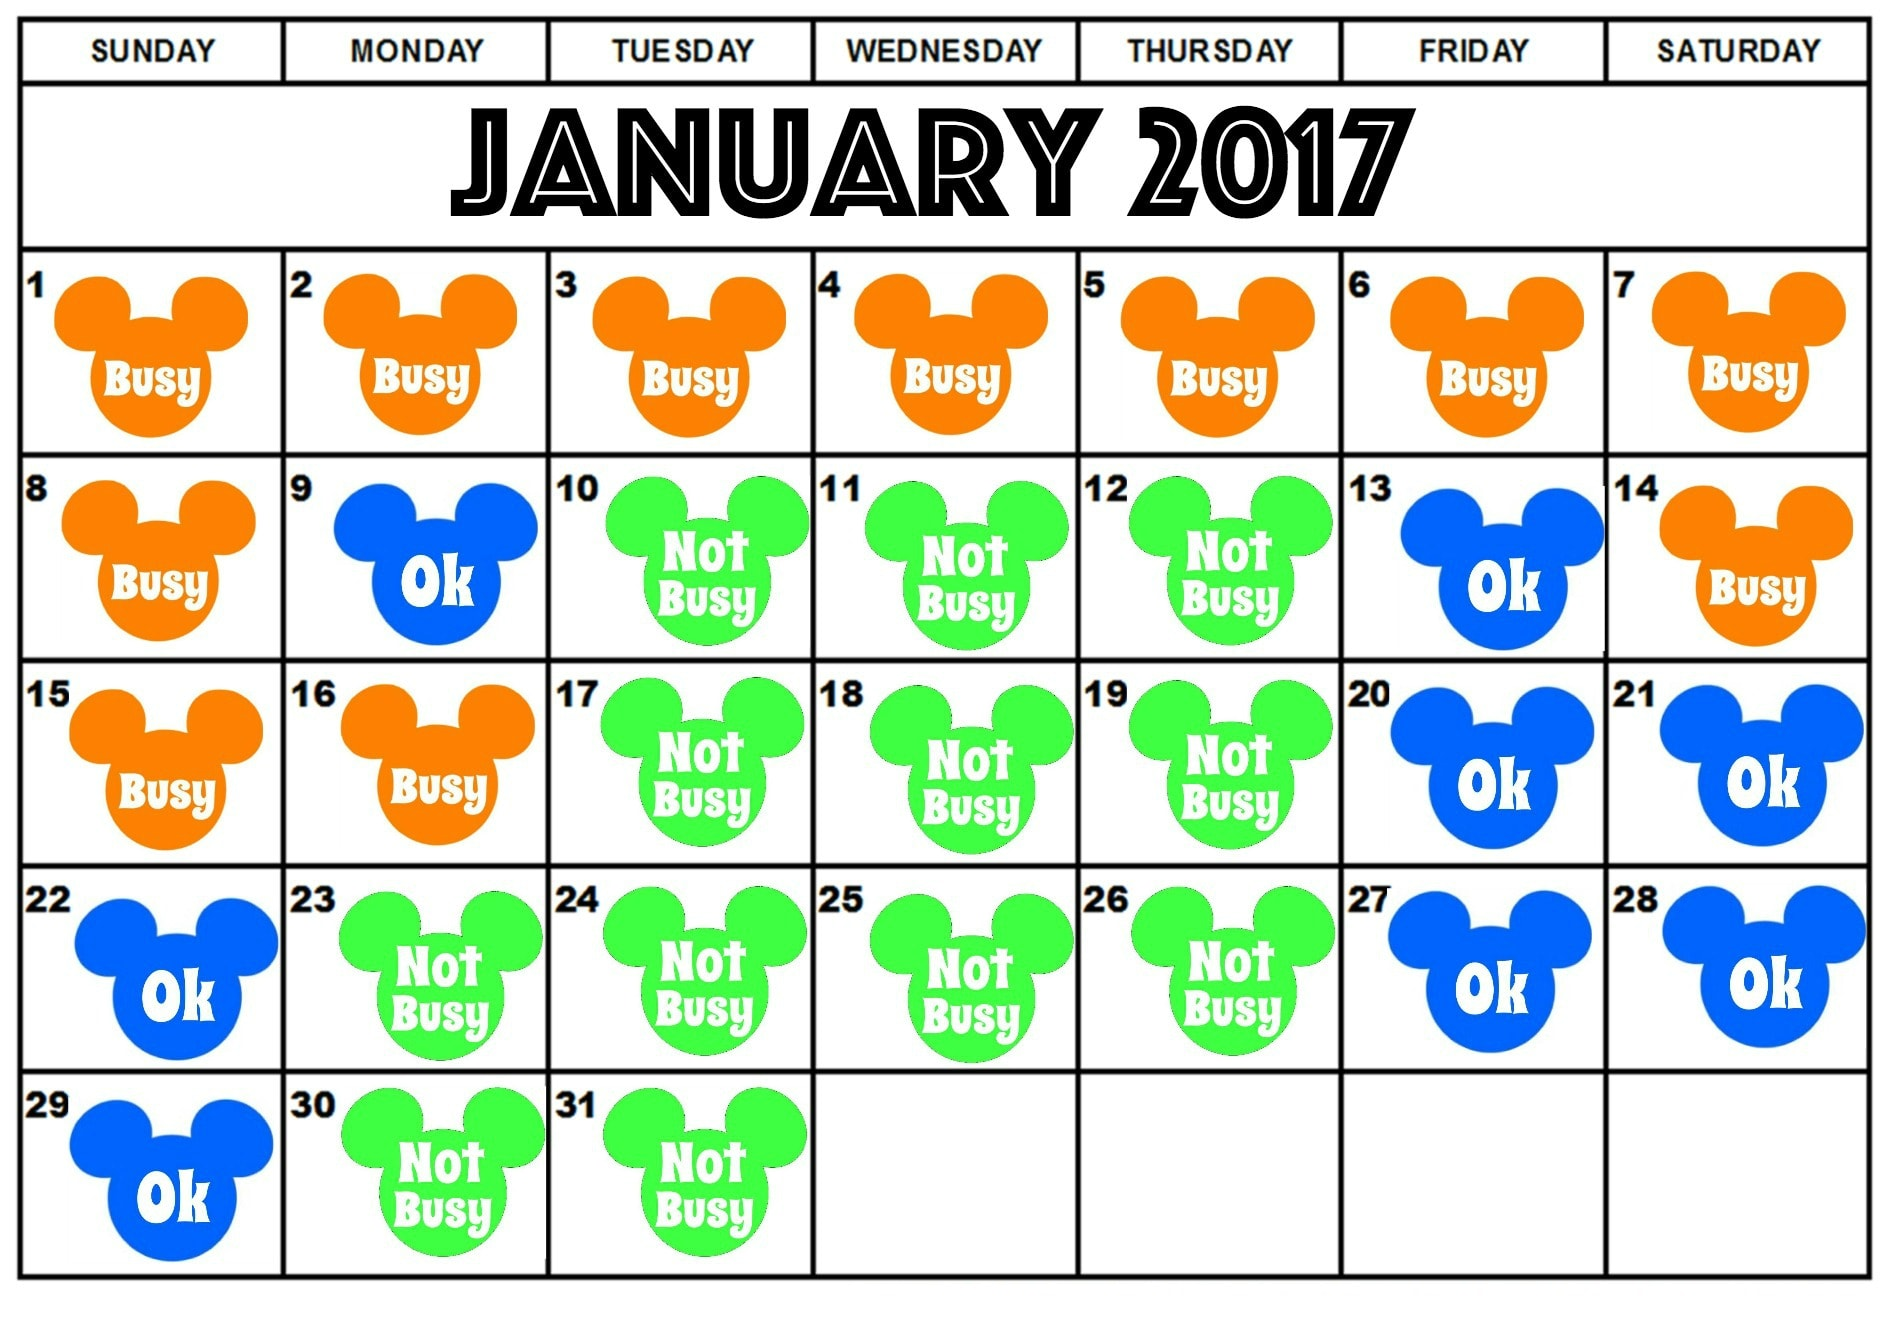 Disneyland Crowd Calendar January